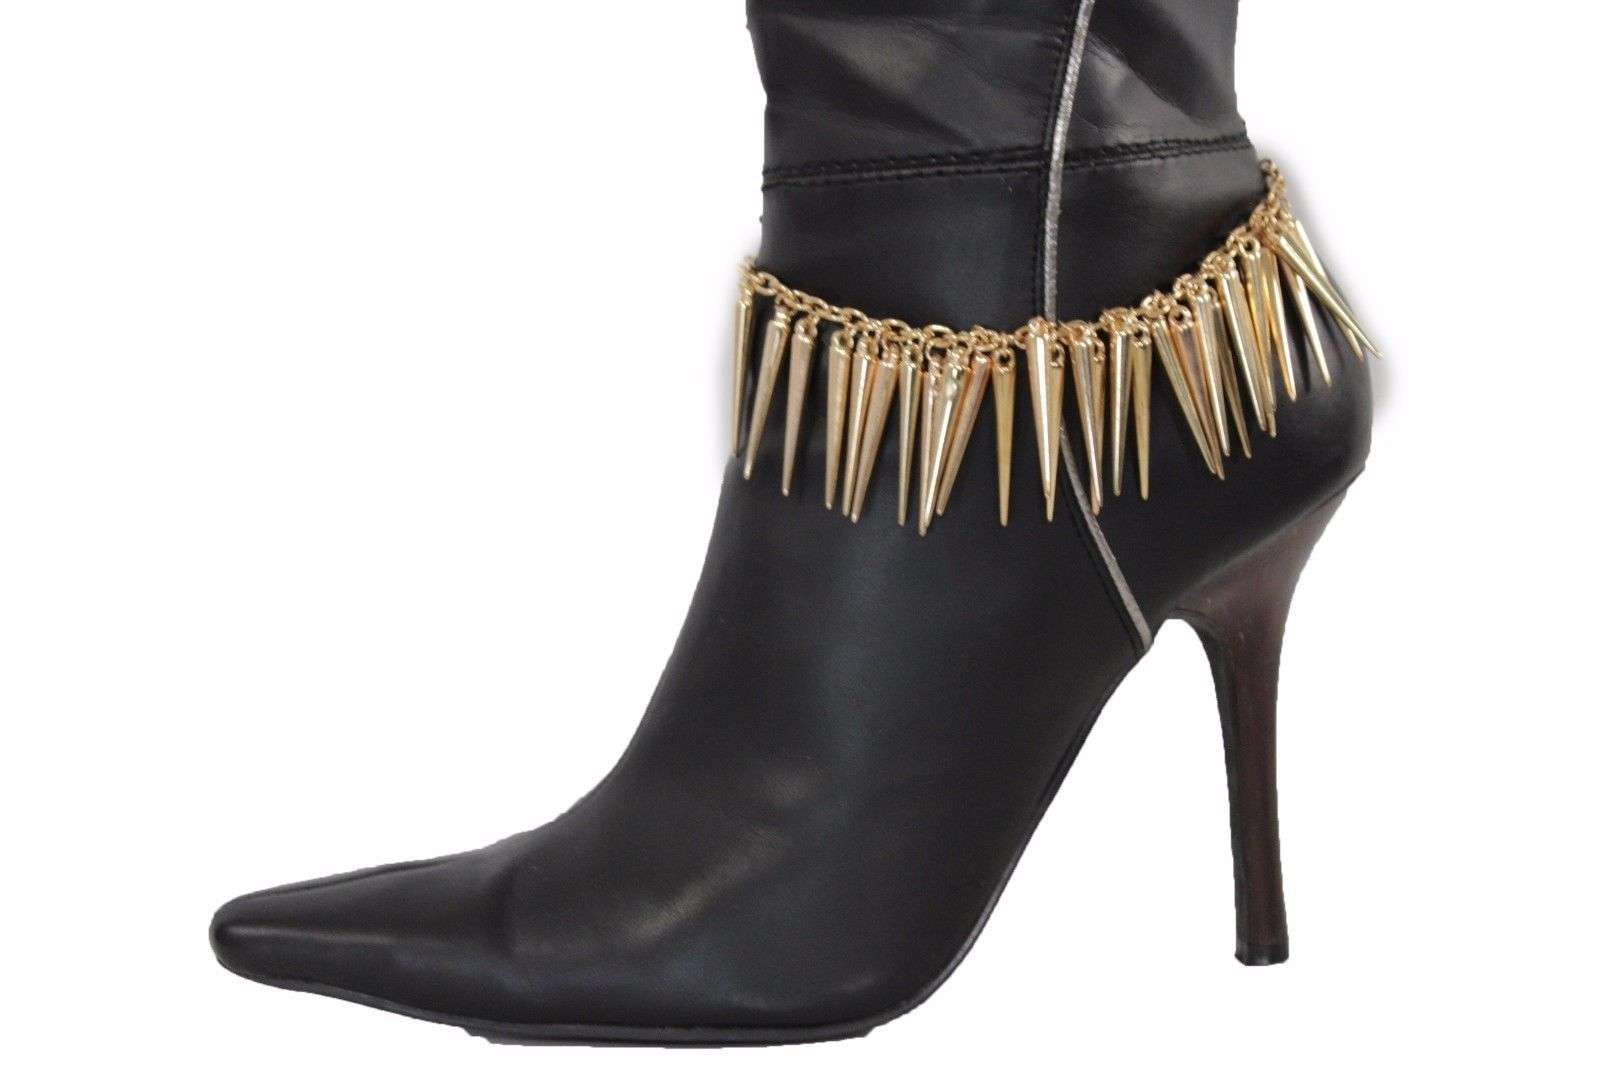 New Women Boot Bracelet Gold Metal Chain Anklet Rocker Fashion Shoe Spikes Charm